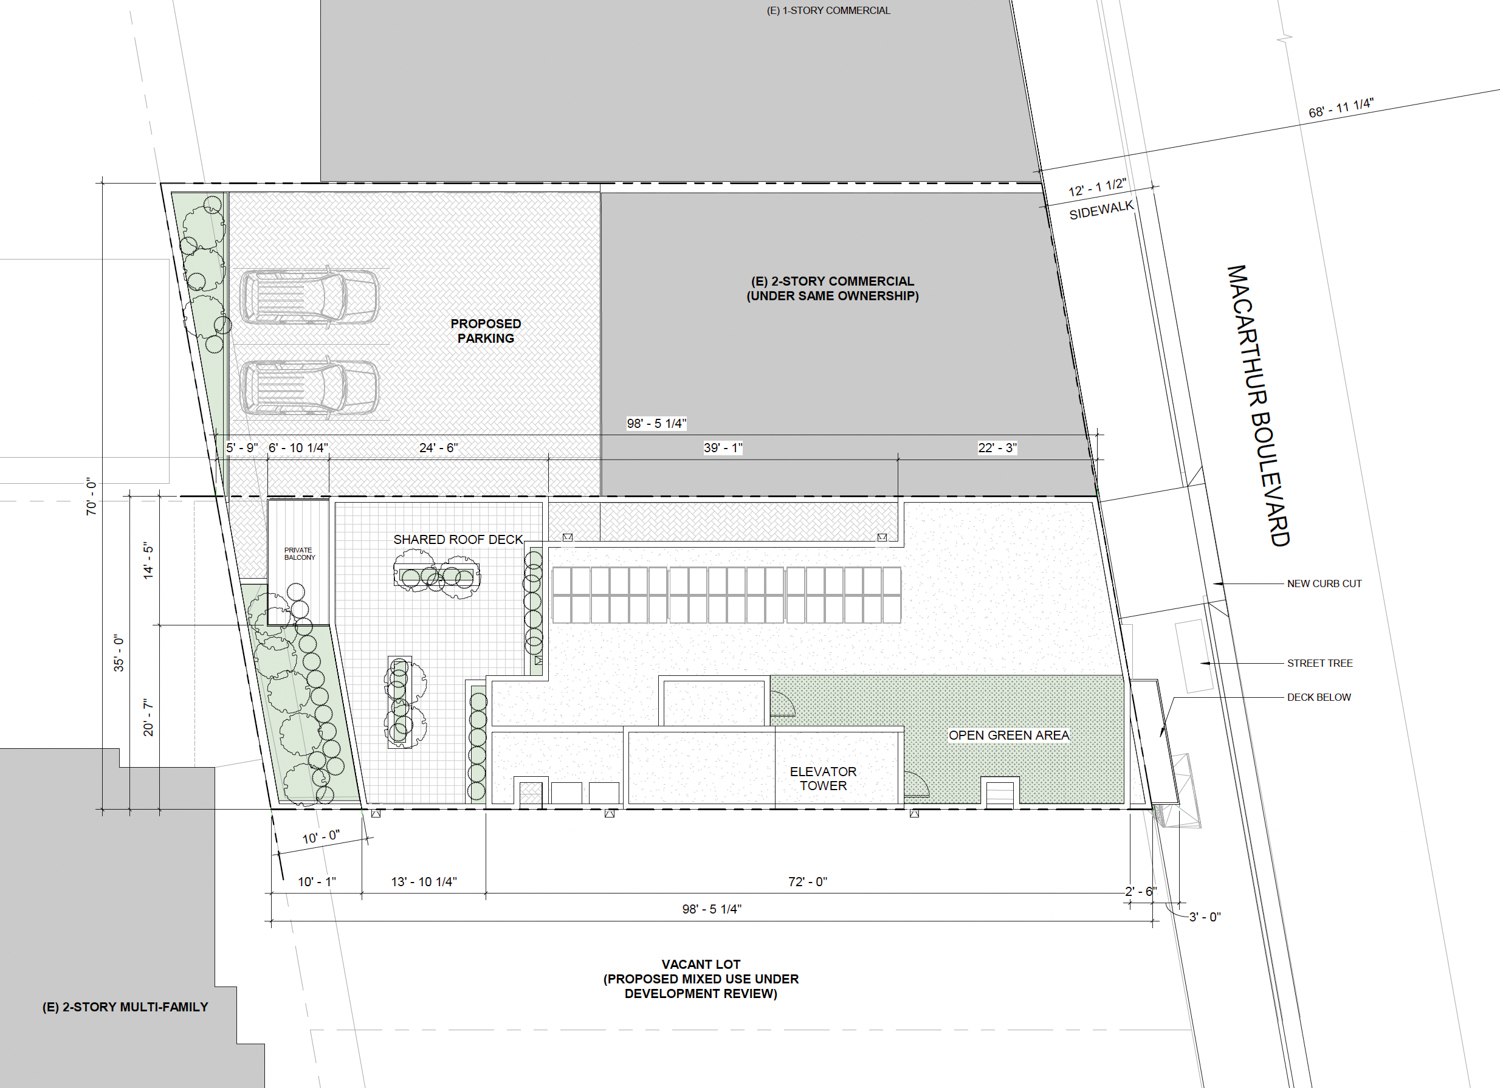 7521 MacArthur Boulevard ground-level floor plan showing the parking garage extension in the rear lot of the adjacent building, rendering by Devi Dutta Architecture